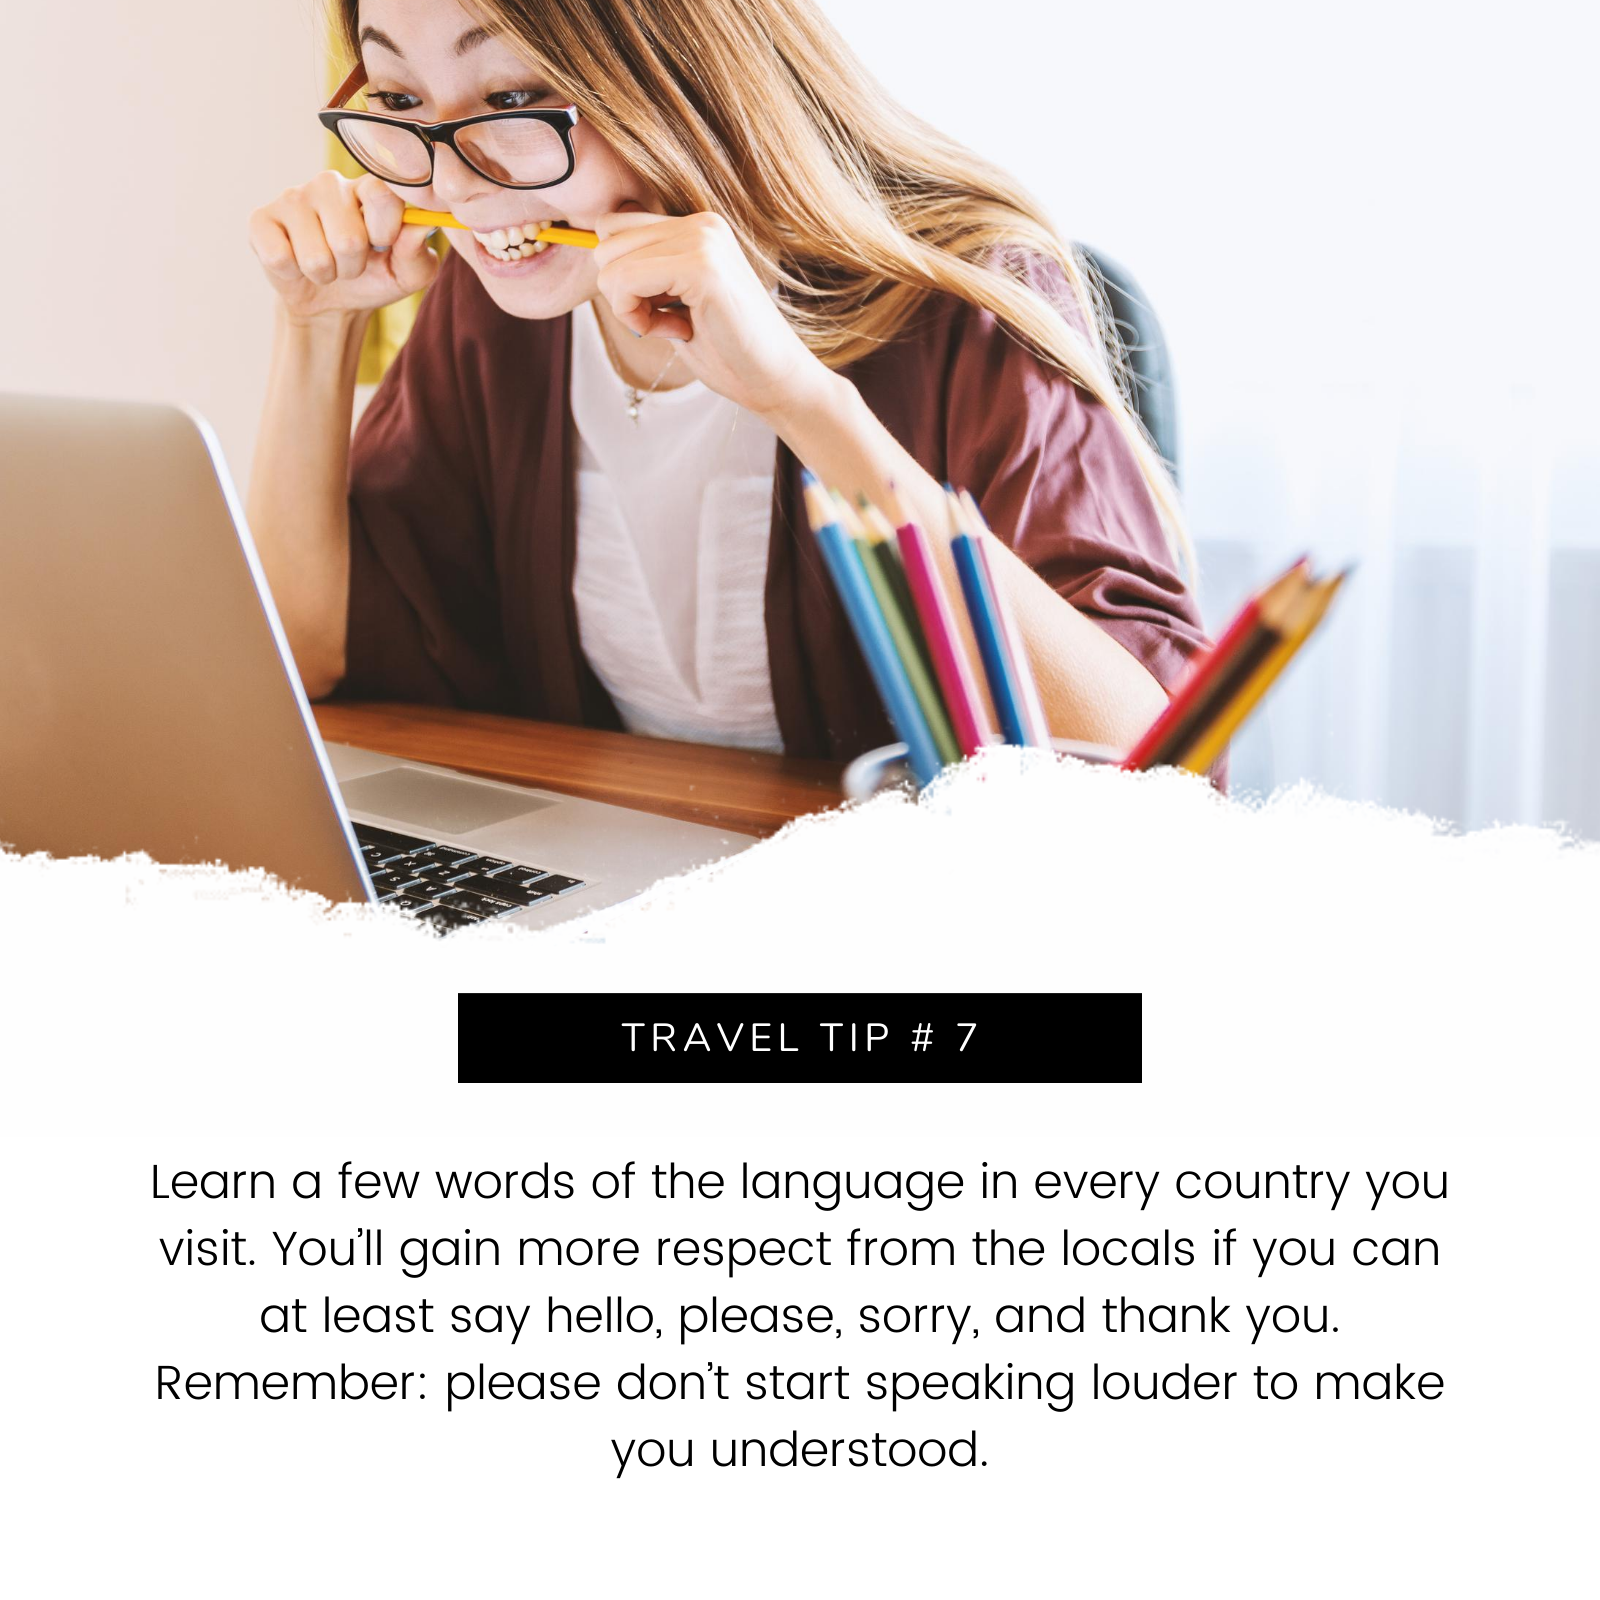 Travel Tip Tuesday! Thinking of taking a trip soon? We can help – that IS our job, after all! It's easy. You just tell us what you want, and we manage the rest of it. Absolutely no effort required! #traveltips #lunch #lunchideas #instafood #snacks #dinner #travelonabudget #budgettraveler #travelblogger #travelskills #ilovetravel #mybudgettravel #budgetlife #dreamtrips #eurotrip#besttraveltips#dreamvacations#travelagent#traveladvisor#luxurytravel#advisor